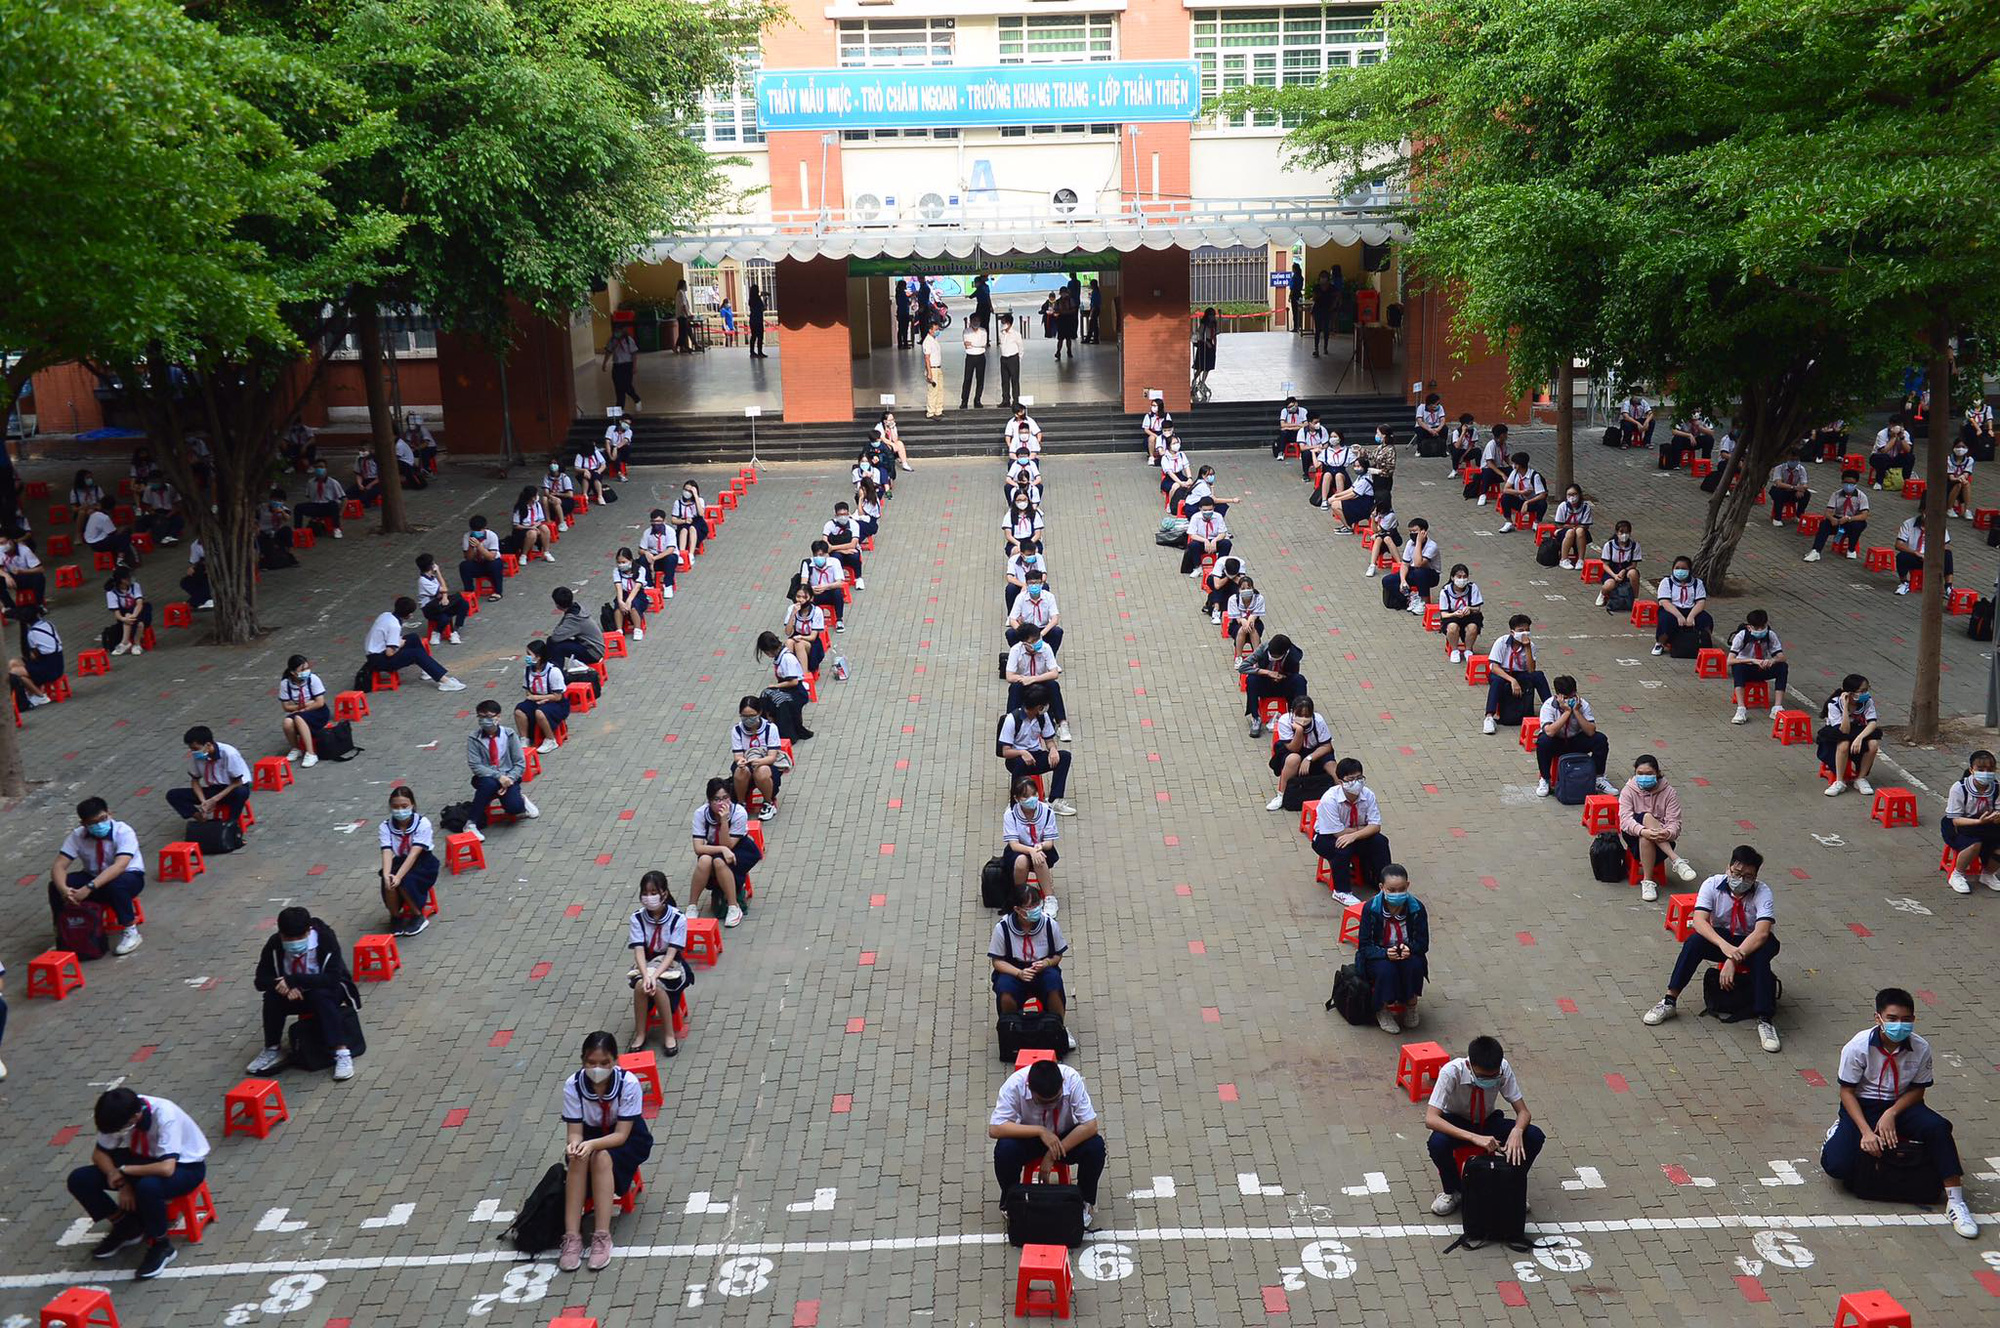 Students of Le Van Tam Middle School in Ho Chi Minh City keep distance from each other inside the school yard on May 4, 2020. Photo: Quang Dinh / Tuoi Tre